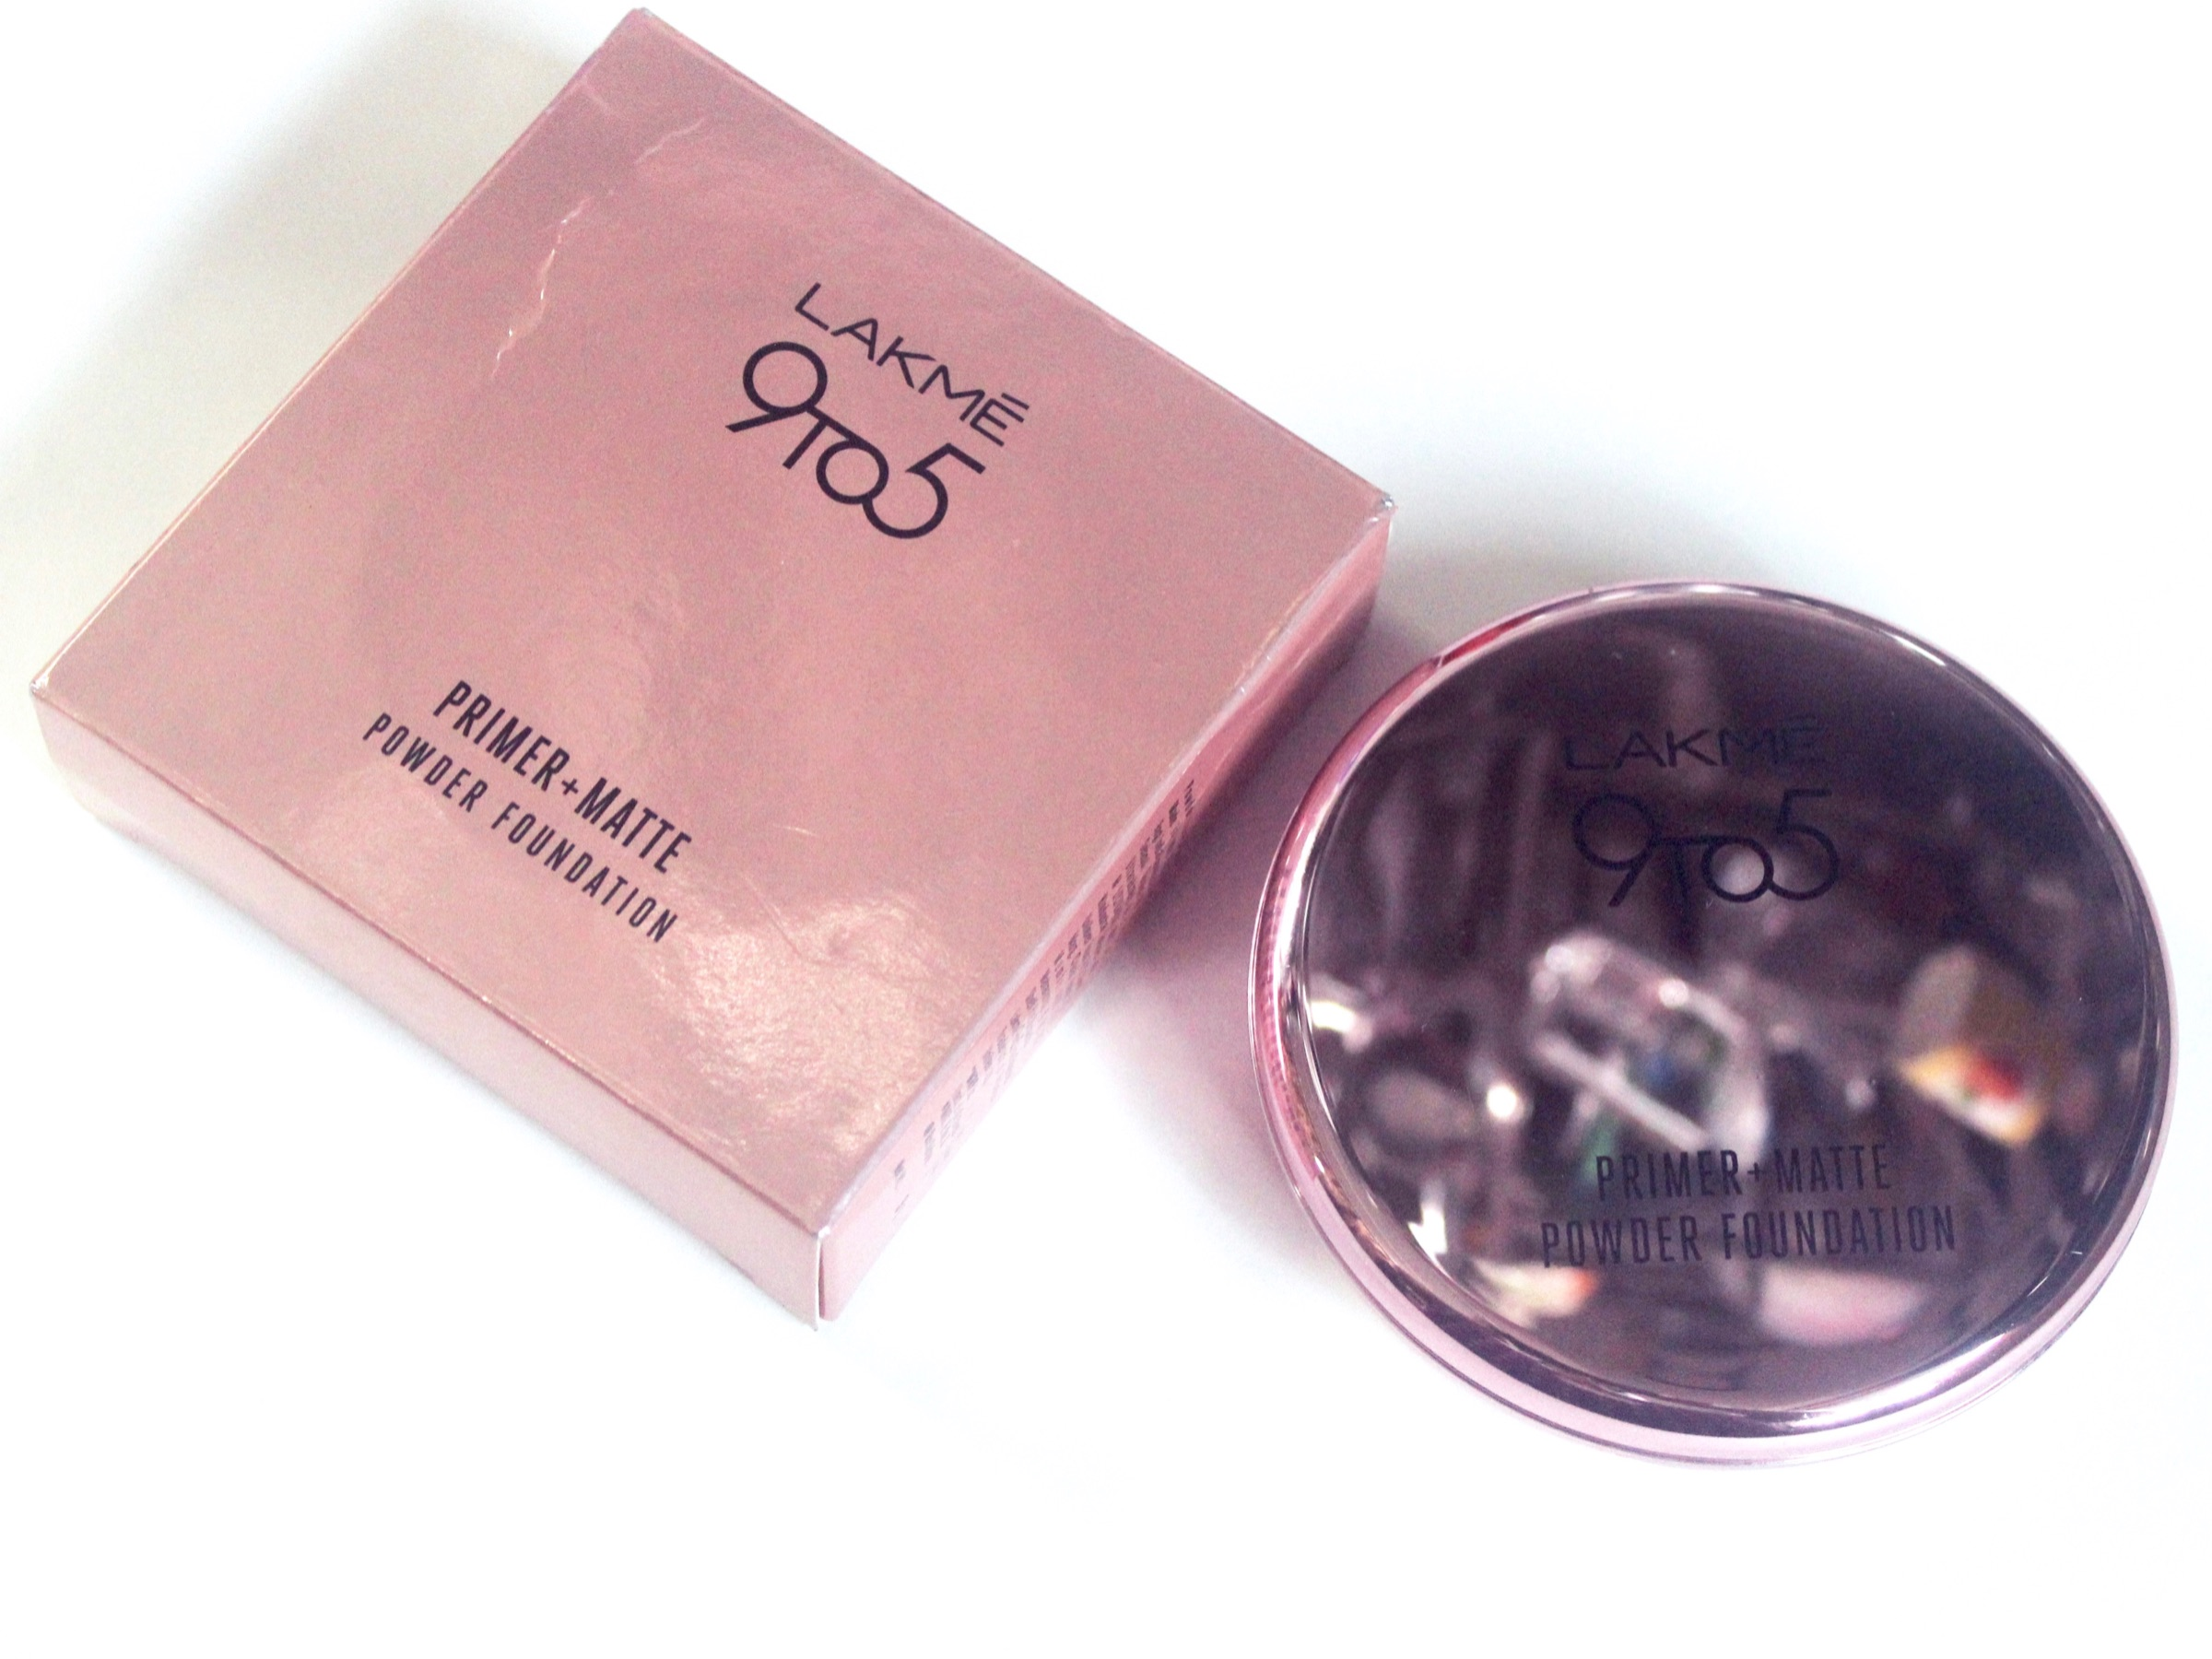 Lakme 9 to 5 Primer + Matte Powder Foundation Compact Review, Shades, Swatches